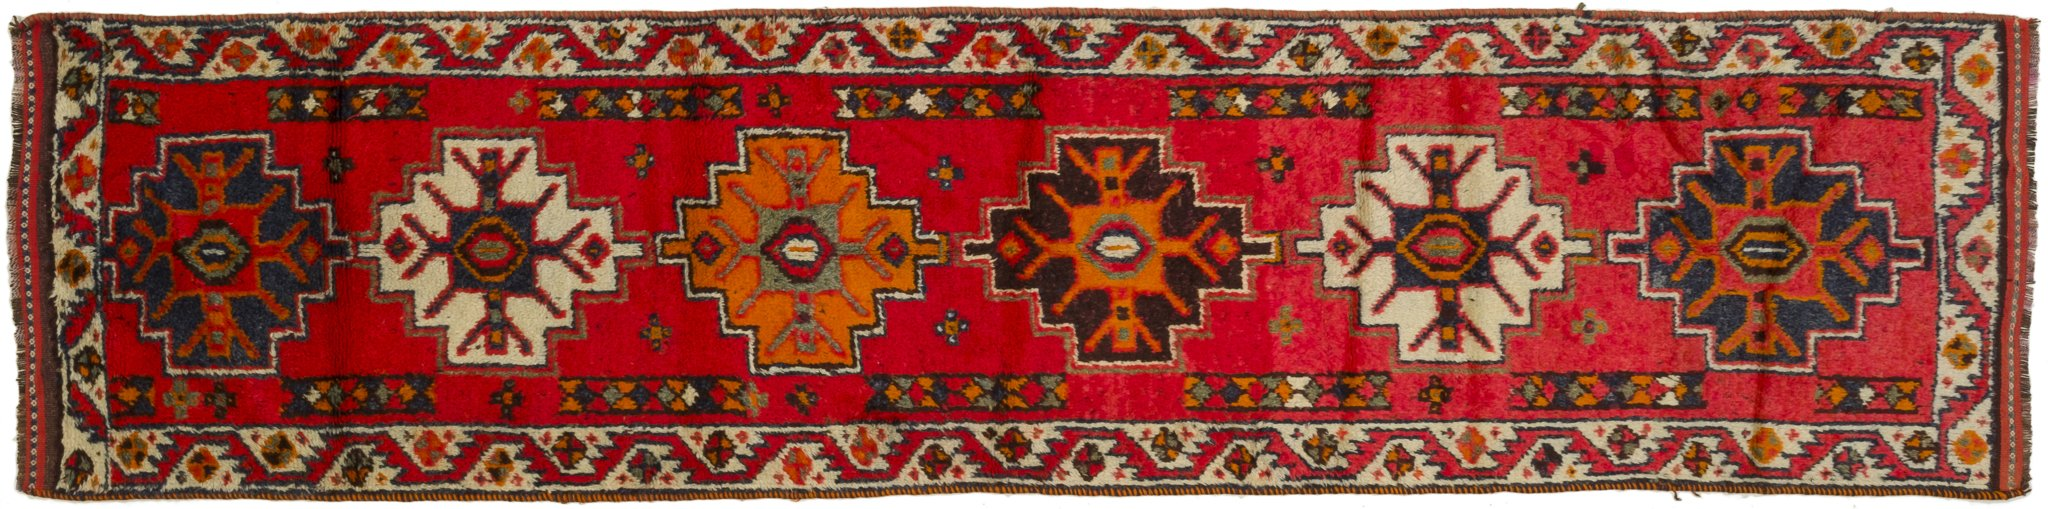 Vintage Turkish Runner Rug Dannie